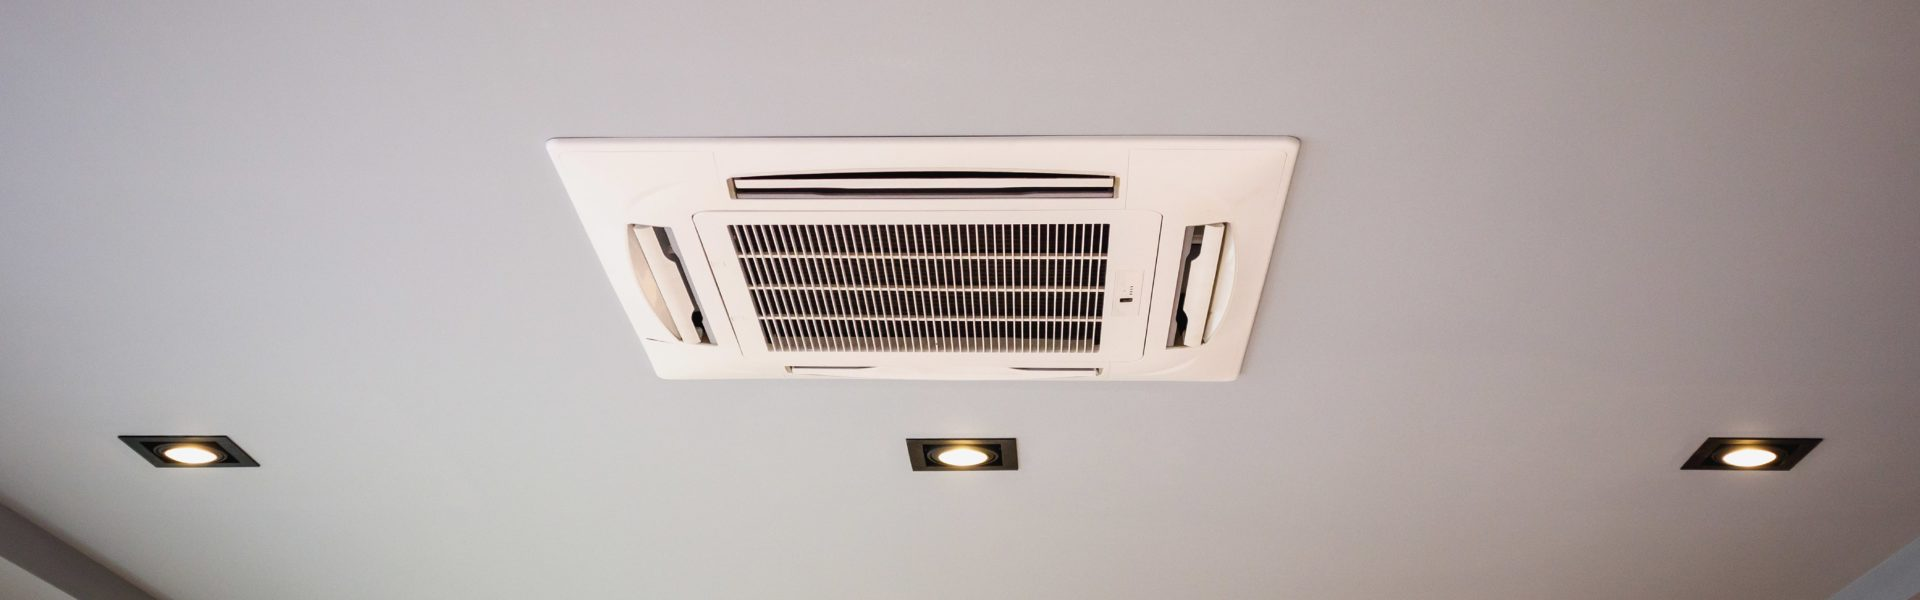 Air conditioning units along ceiling of building